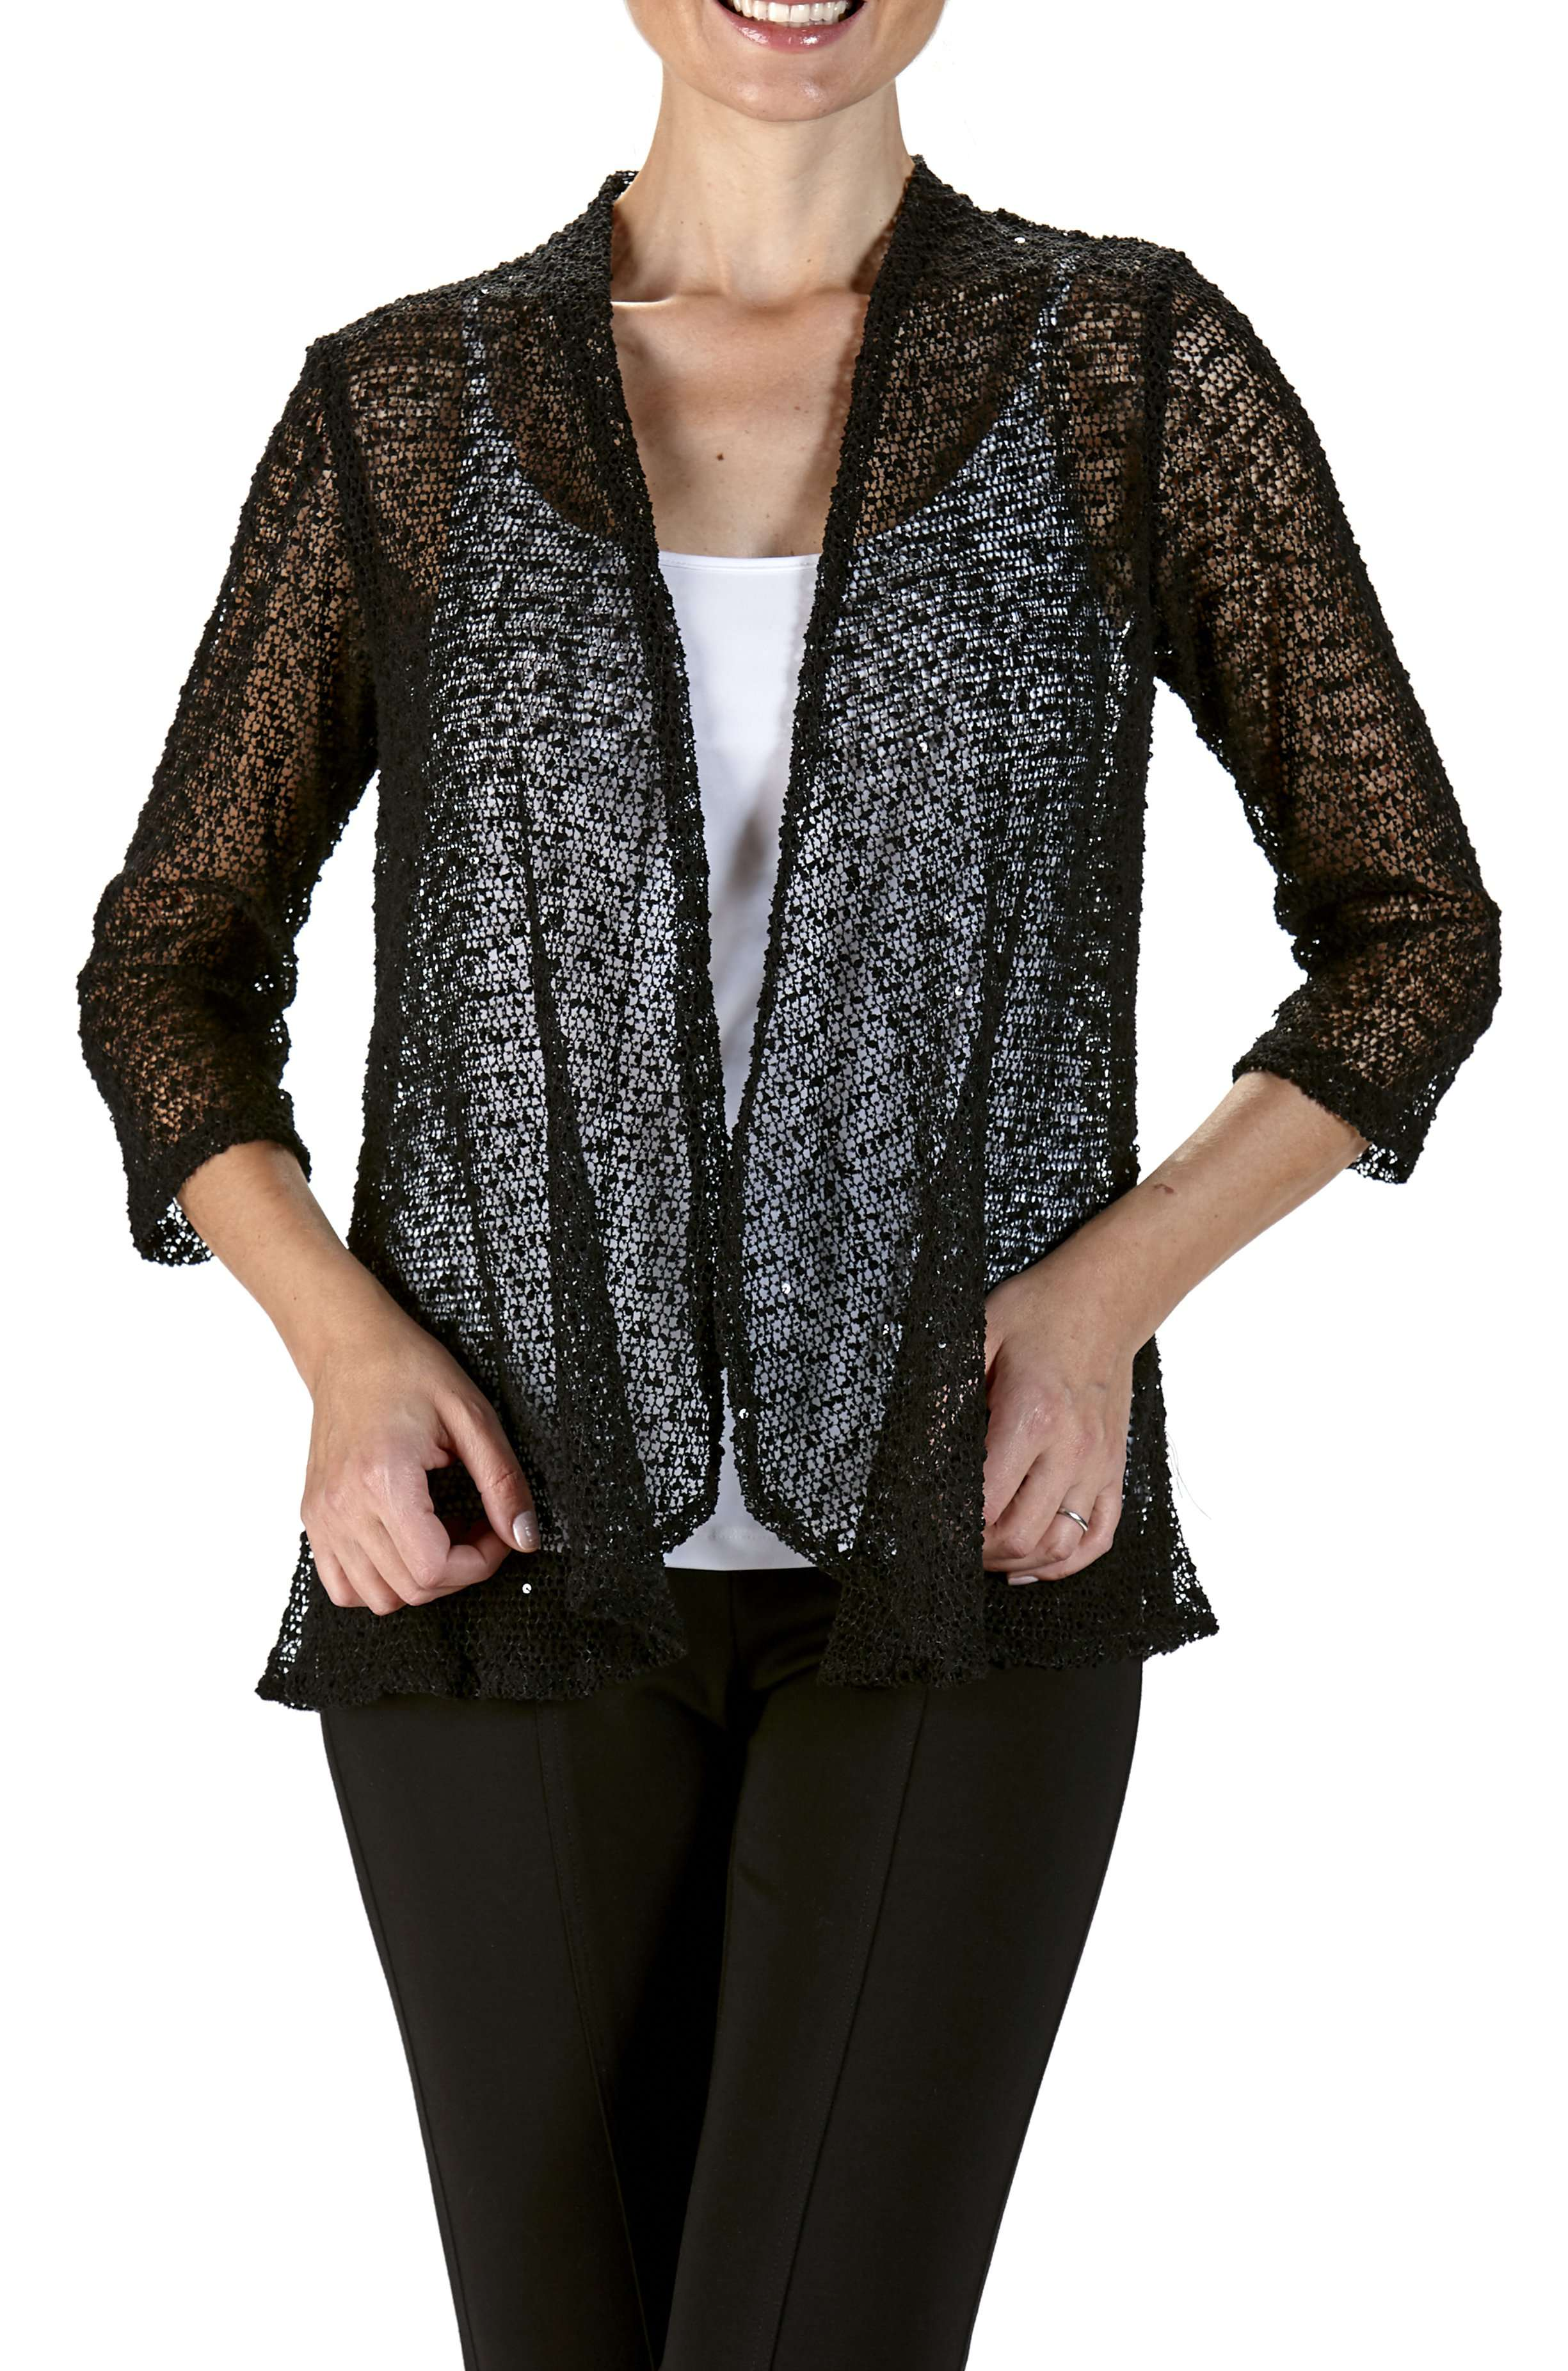 Jacket Black Soft Knit Mesh Fabric-Subtle Glitter-Washable-Made in Canada - Yvonne Marie